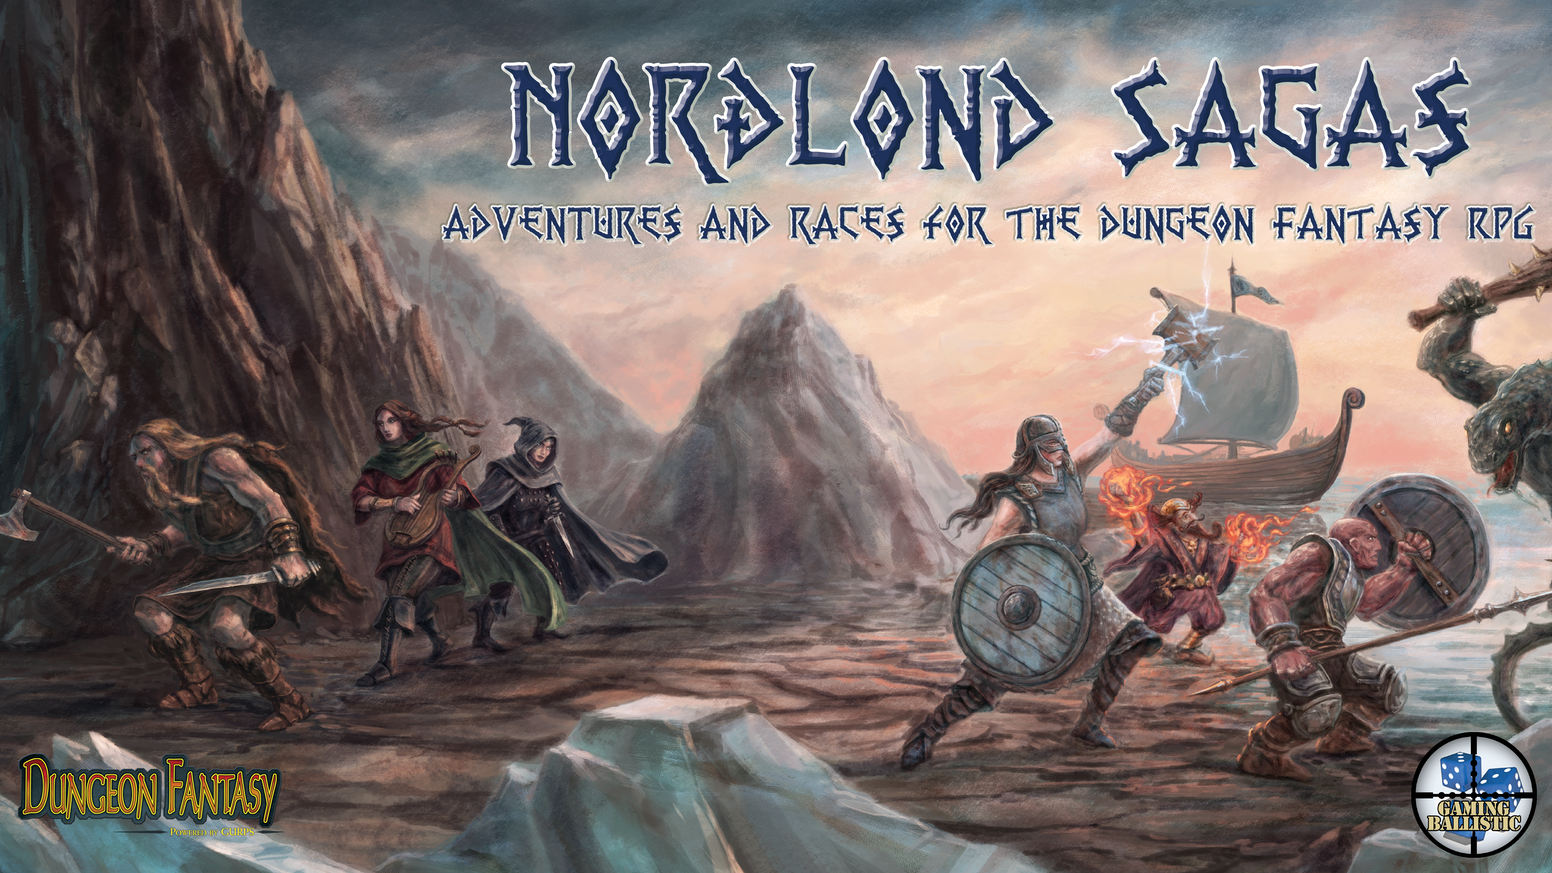 Three new works (two adventure locations, one rules book) expanding the Norðlond setting for the Dungeon Fantasy RPG, Powered by GURPS.